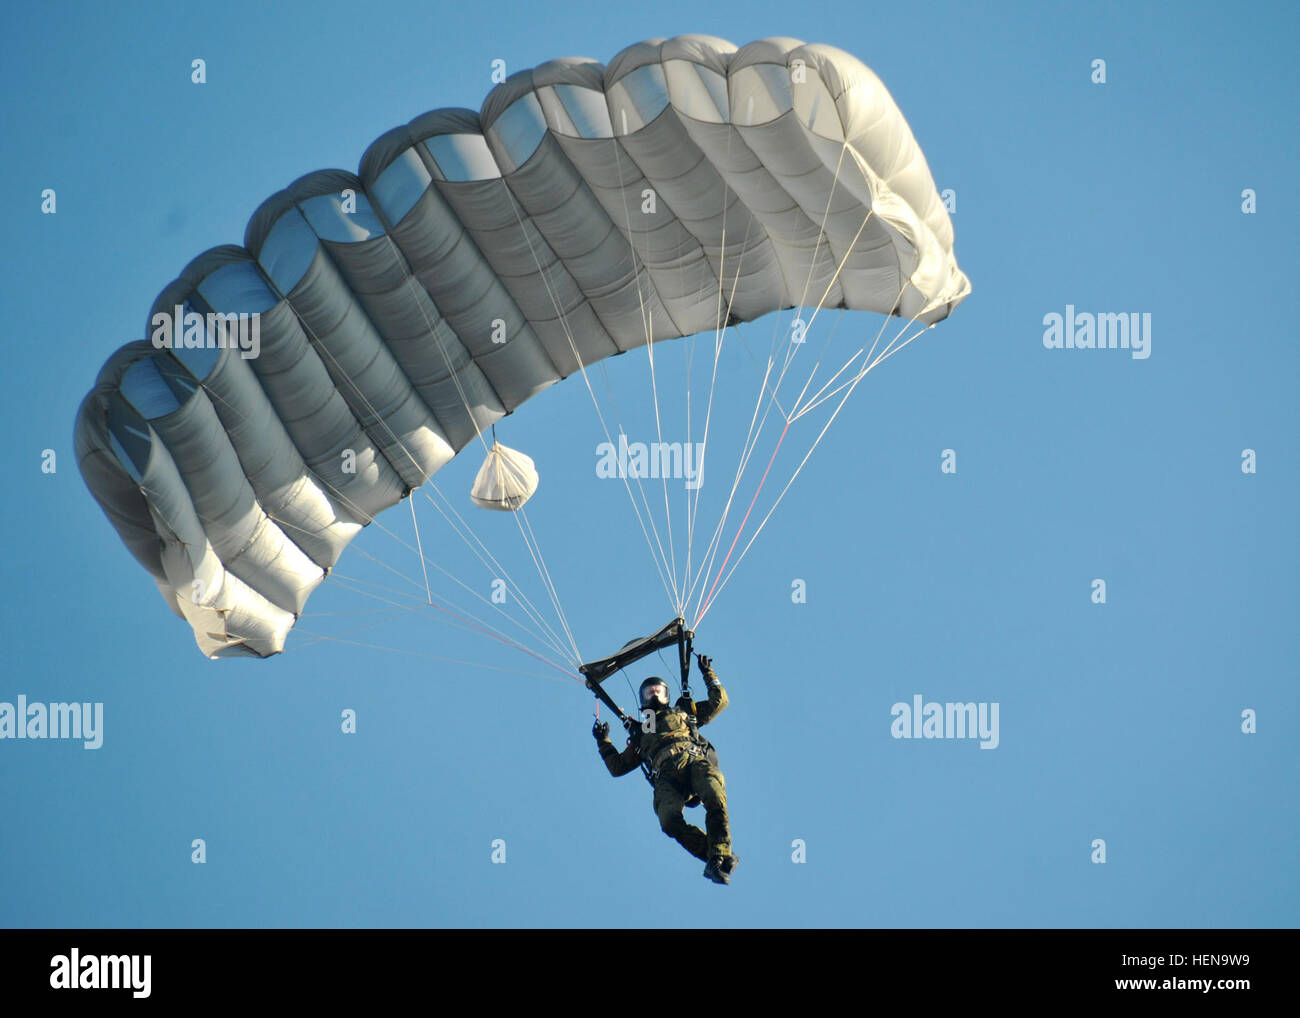 A German paratrooper conducts a high altitude, low opening jump over the Alzey Drop Zone near Kaiserslautern Dec. - Stock Image